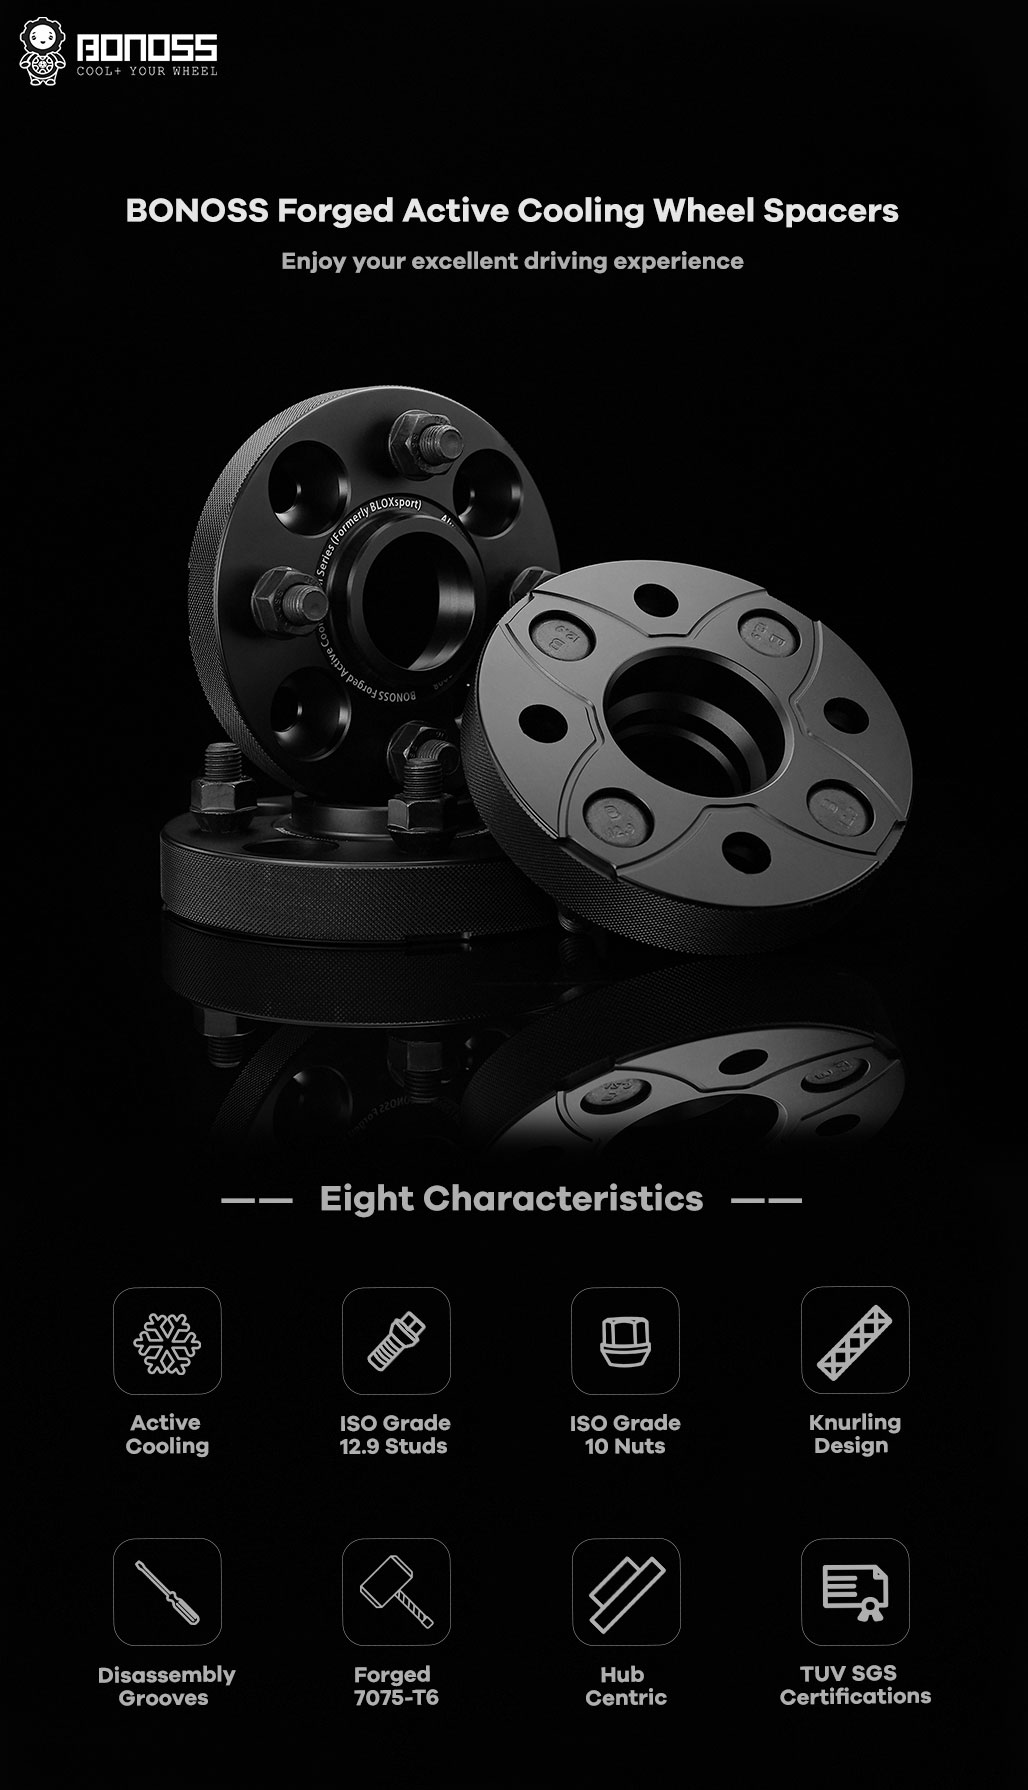 BONOSS-forged-active-cooling-wheel-spacer-mitsubishi-mirage-4x100-56.1-M12x1.5-7075T6-by-grace-1